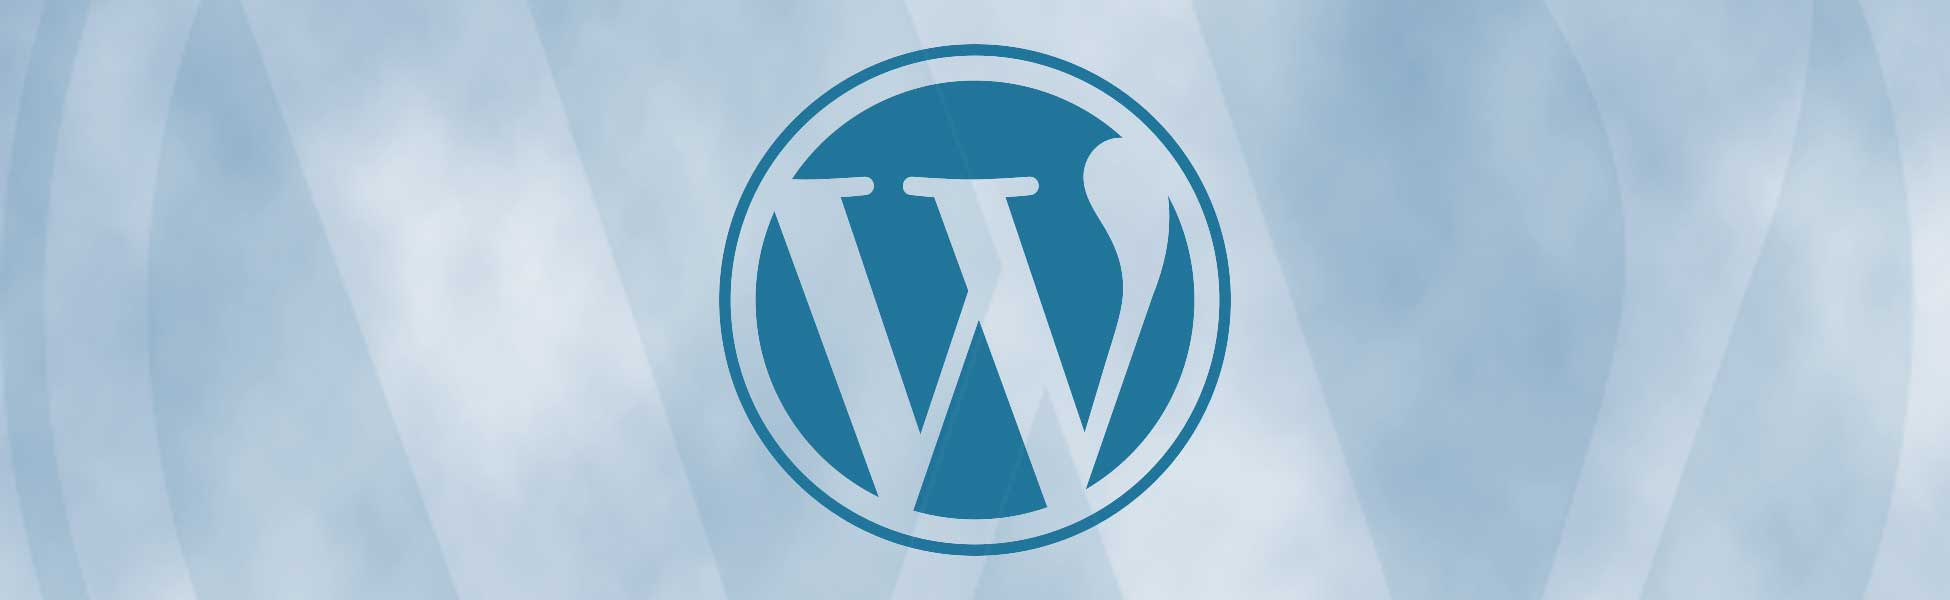 rhode island wordpress design and maintenance